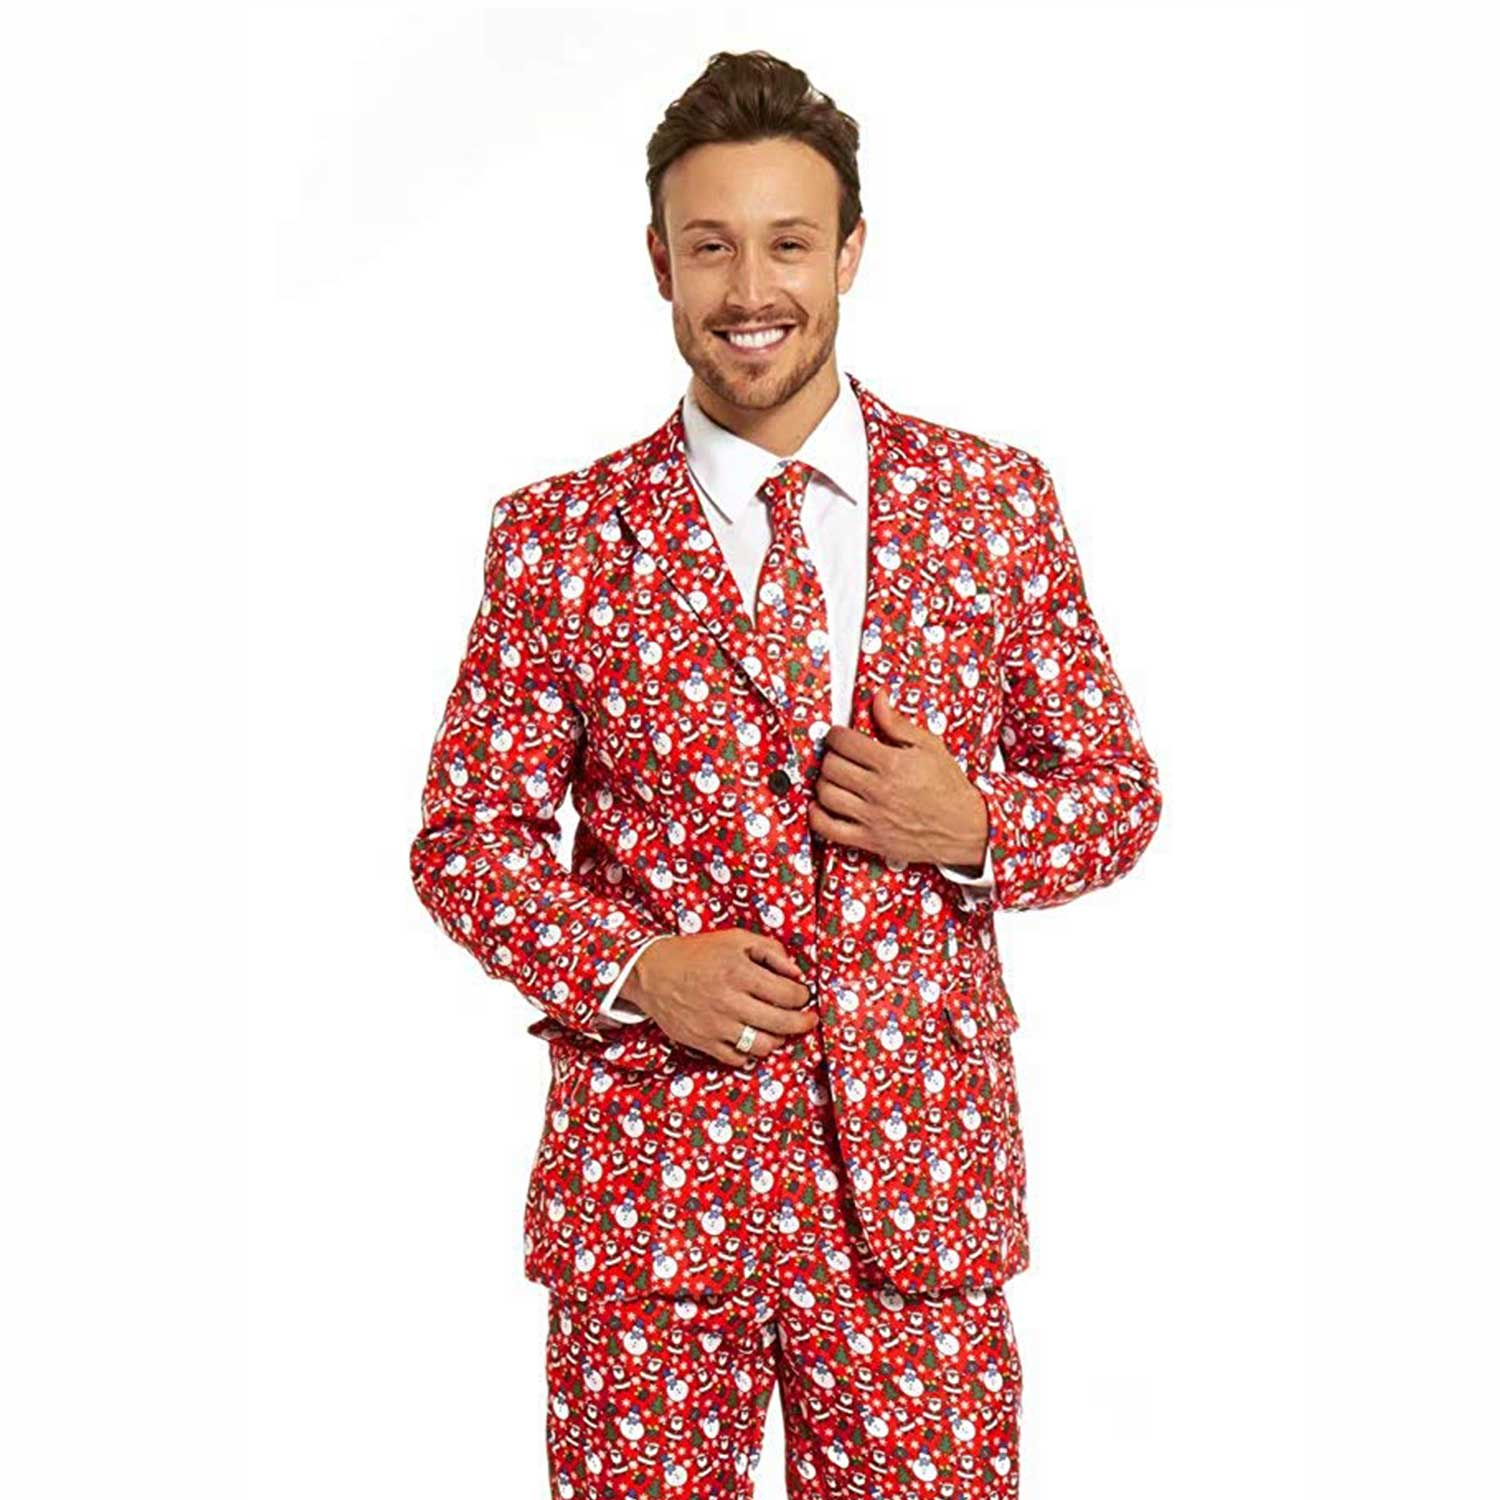 Christmas Party Suit Men.Funny Snowman With Santa Men S Christmas Suit